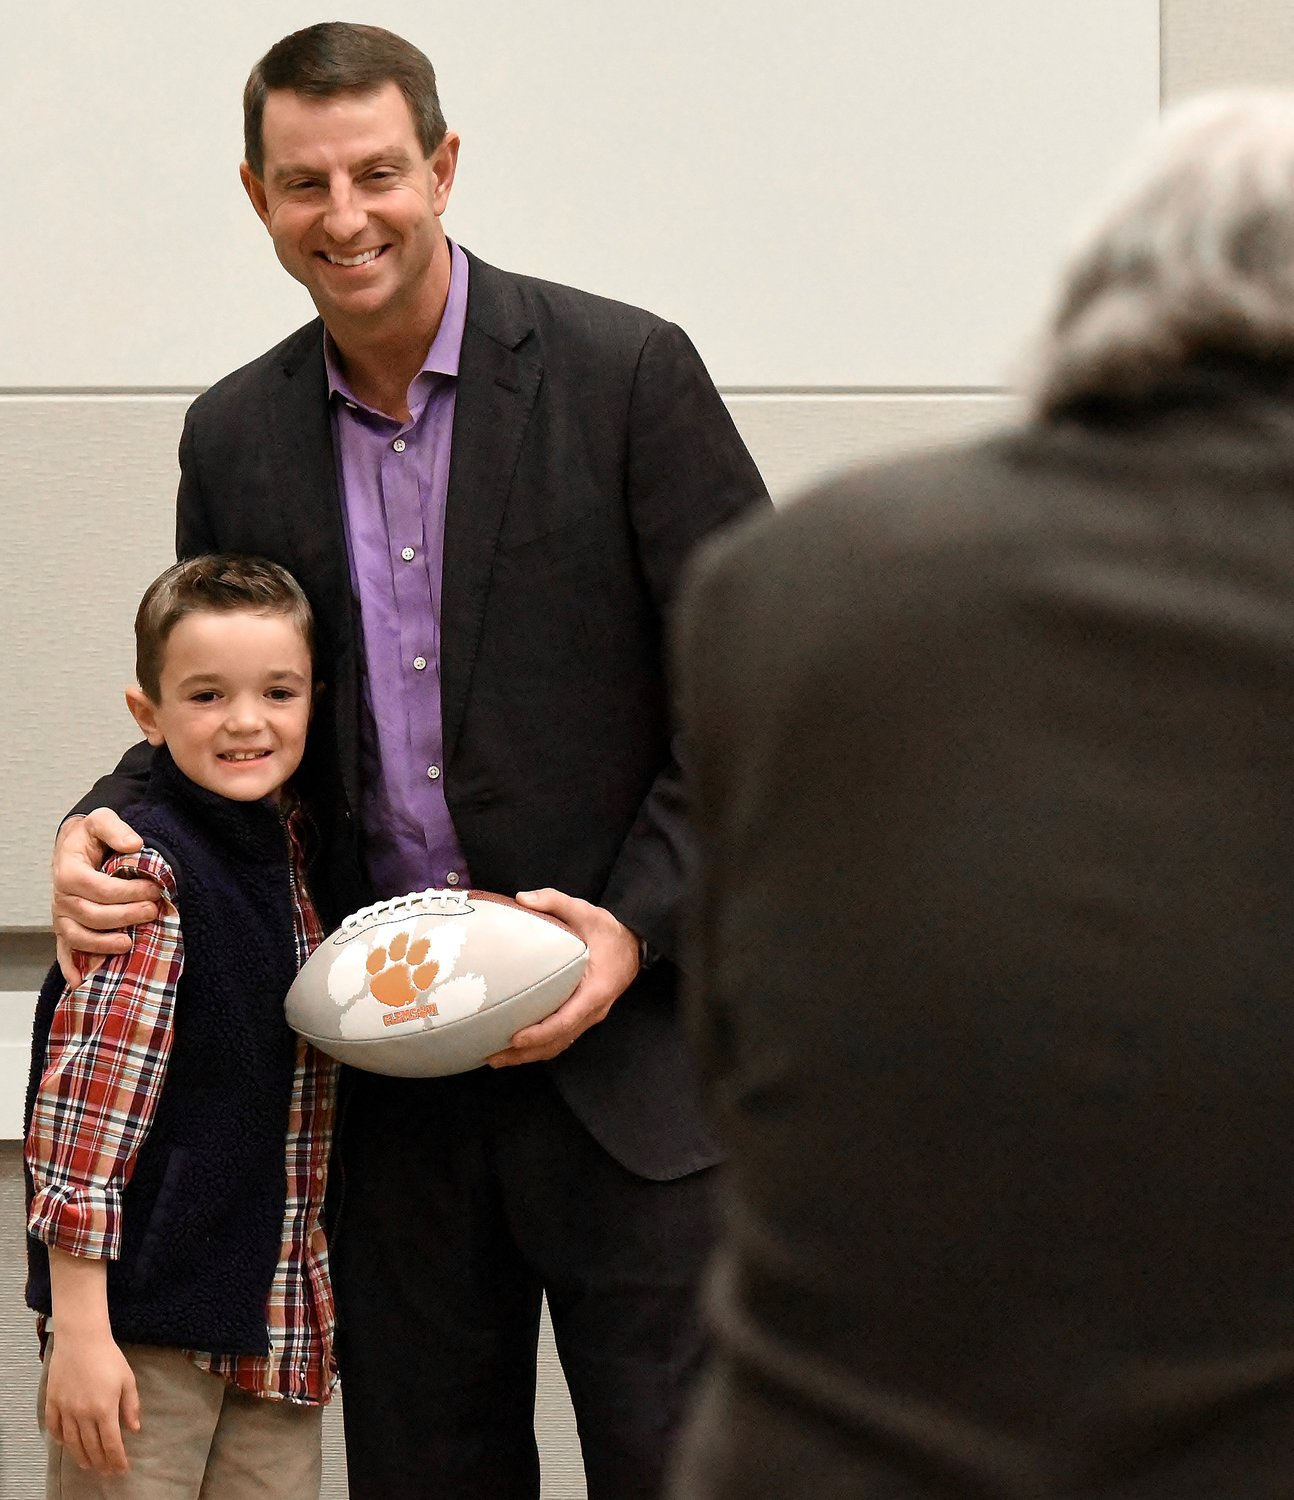 Football fans of all ages waited patiently in line for a picture with Clemson head football coach Dabo Swinney Thursday night at the Clarence Brown Conference Center in Cartersville. Swinney spoke to a standing-room-only crowd during the 15th Annual Bartow County FCA Home Team Fundraising Banquet.